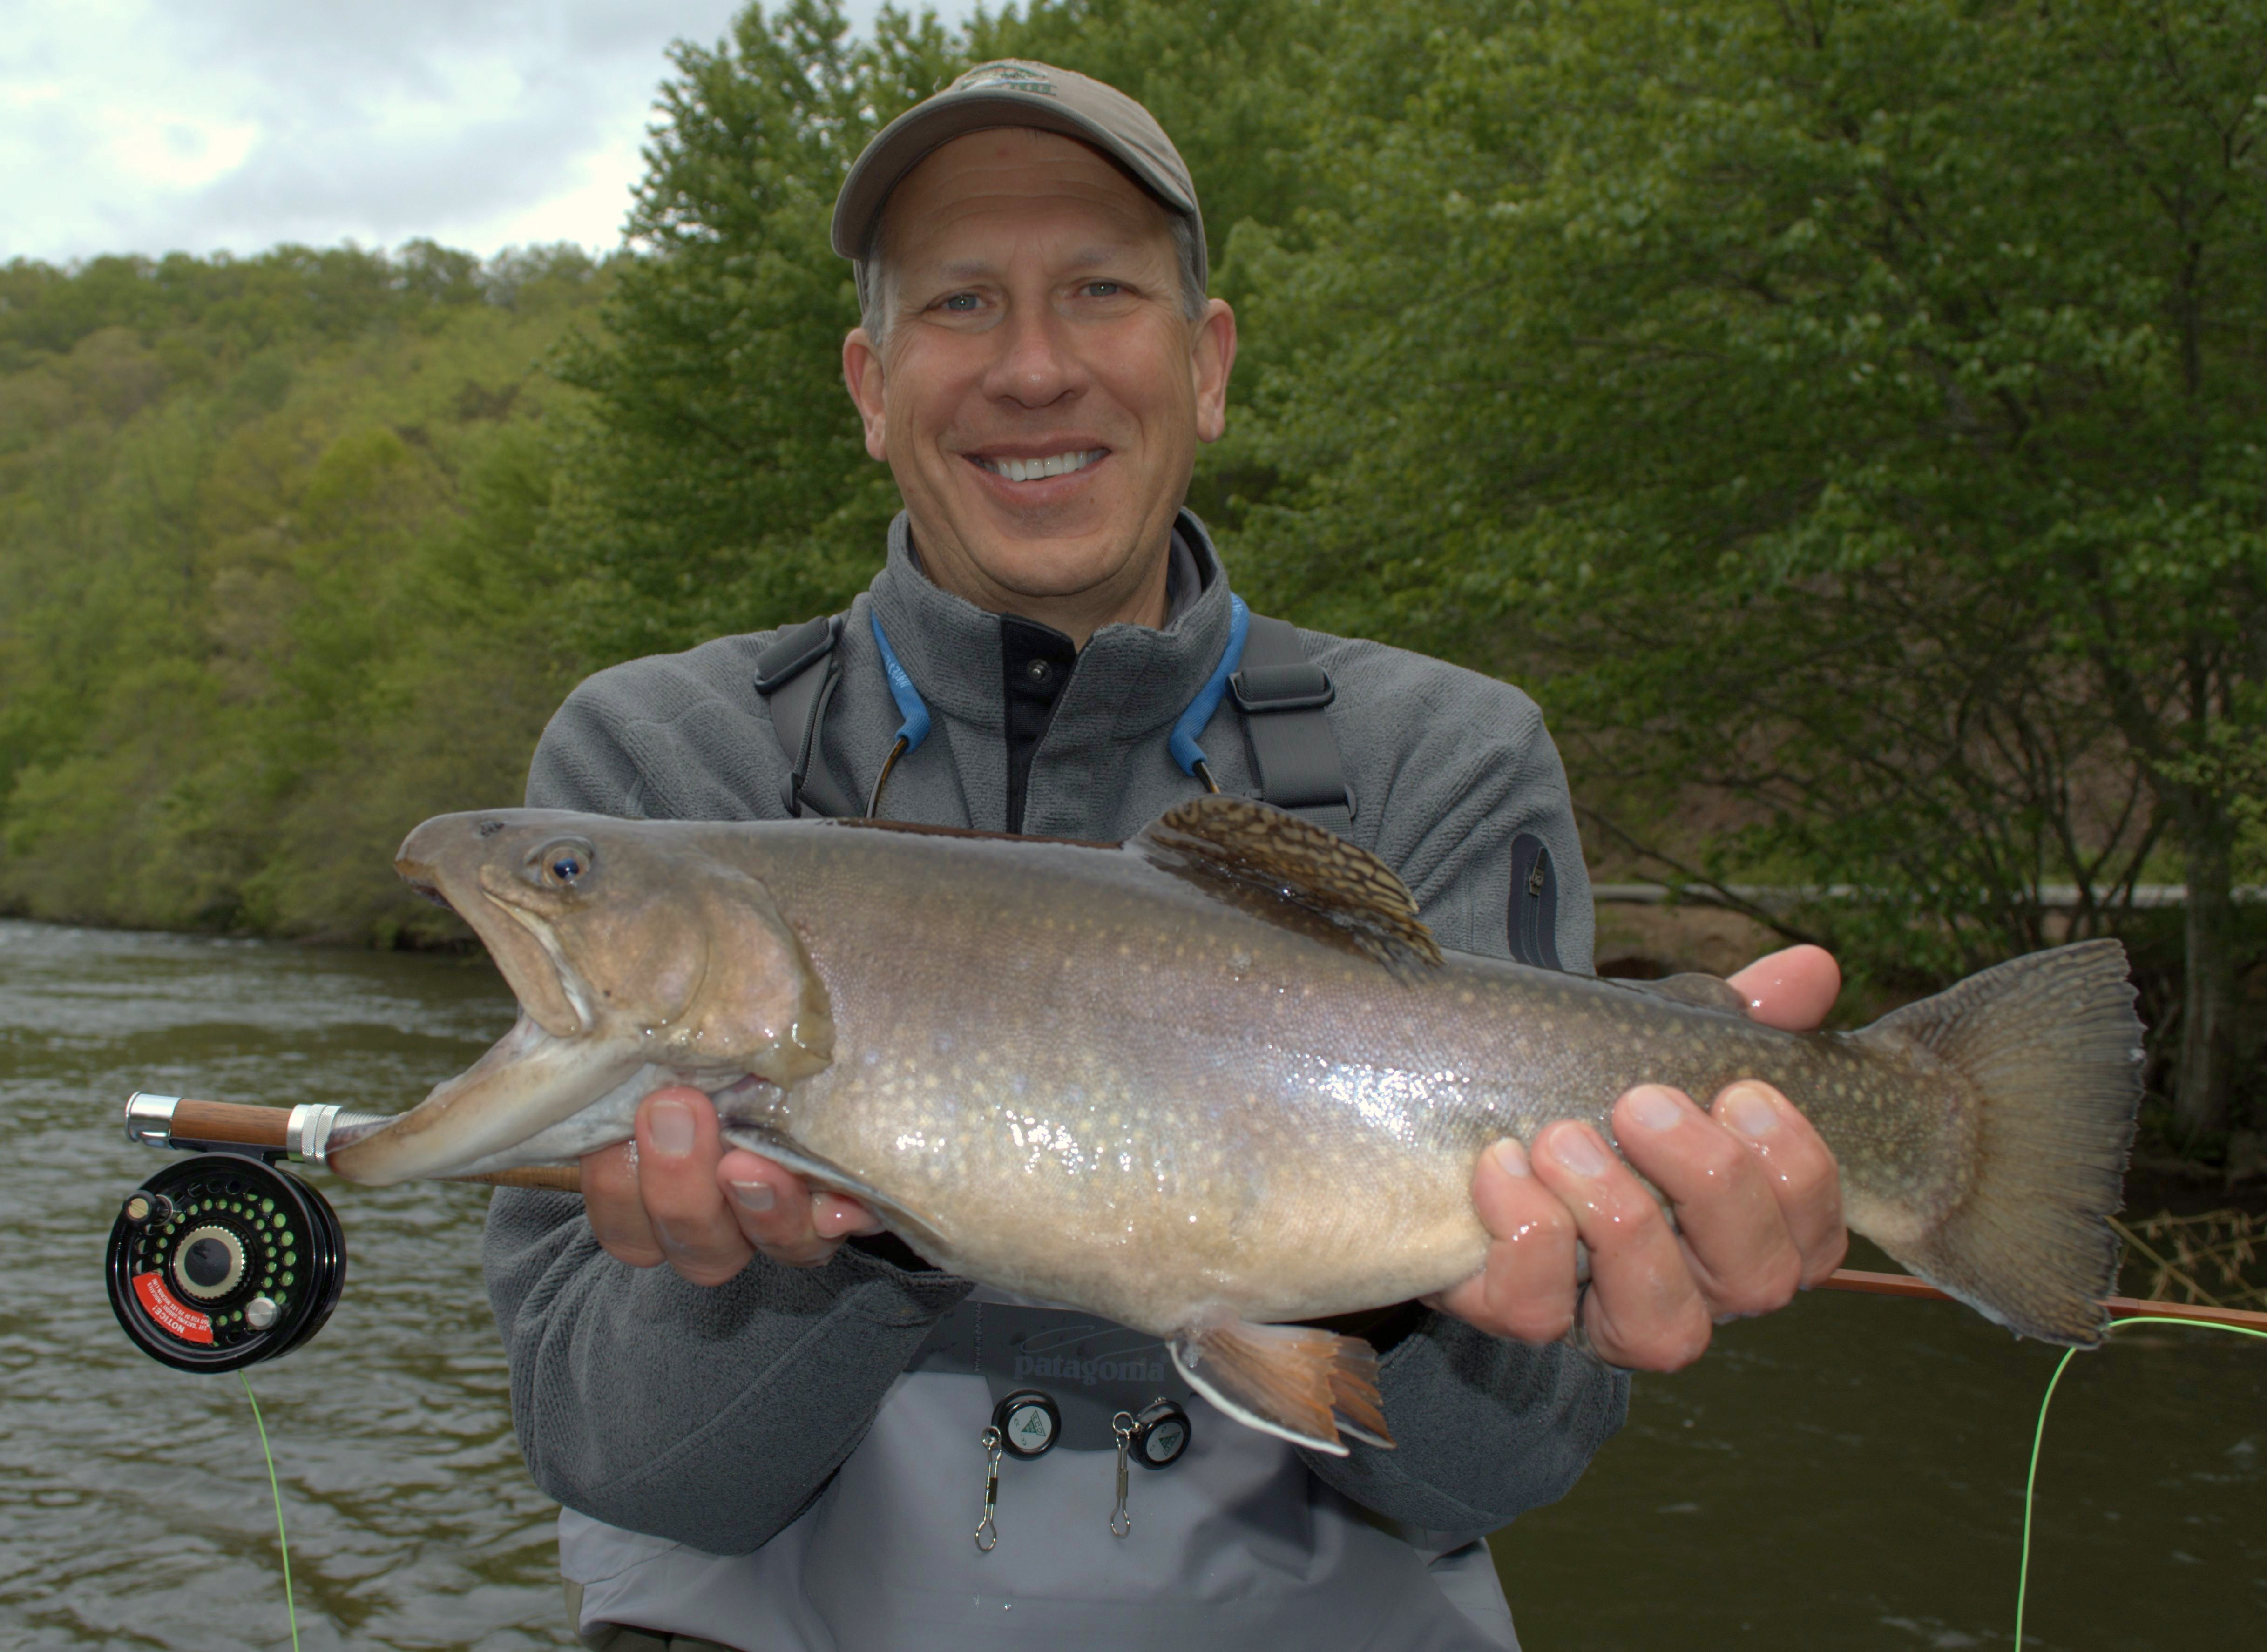 Western north carolina fly fishing trail guides and outfitter for Nc trout fishing regulations